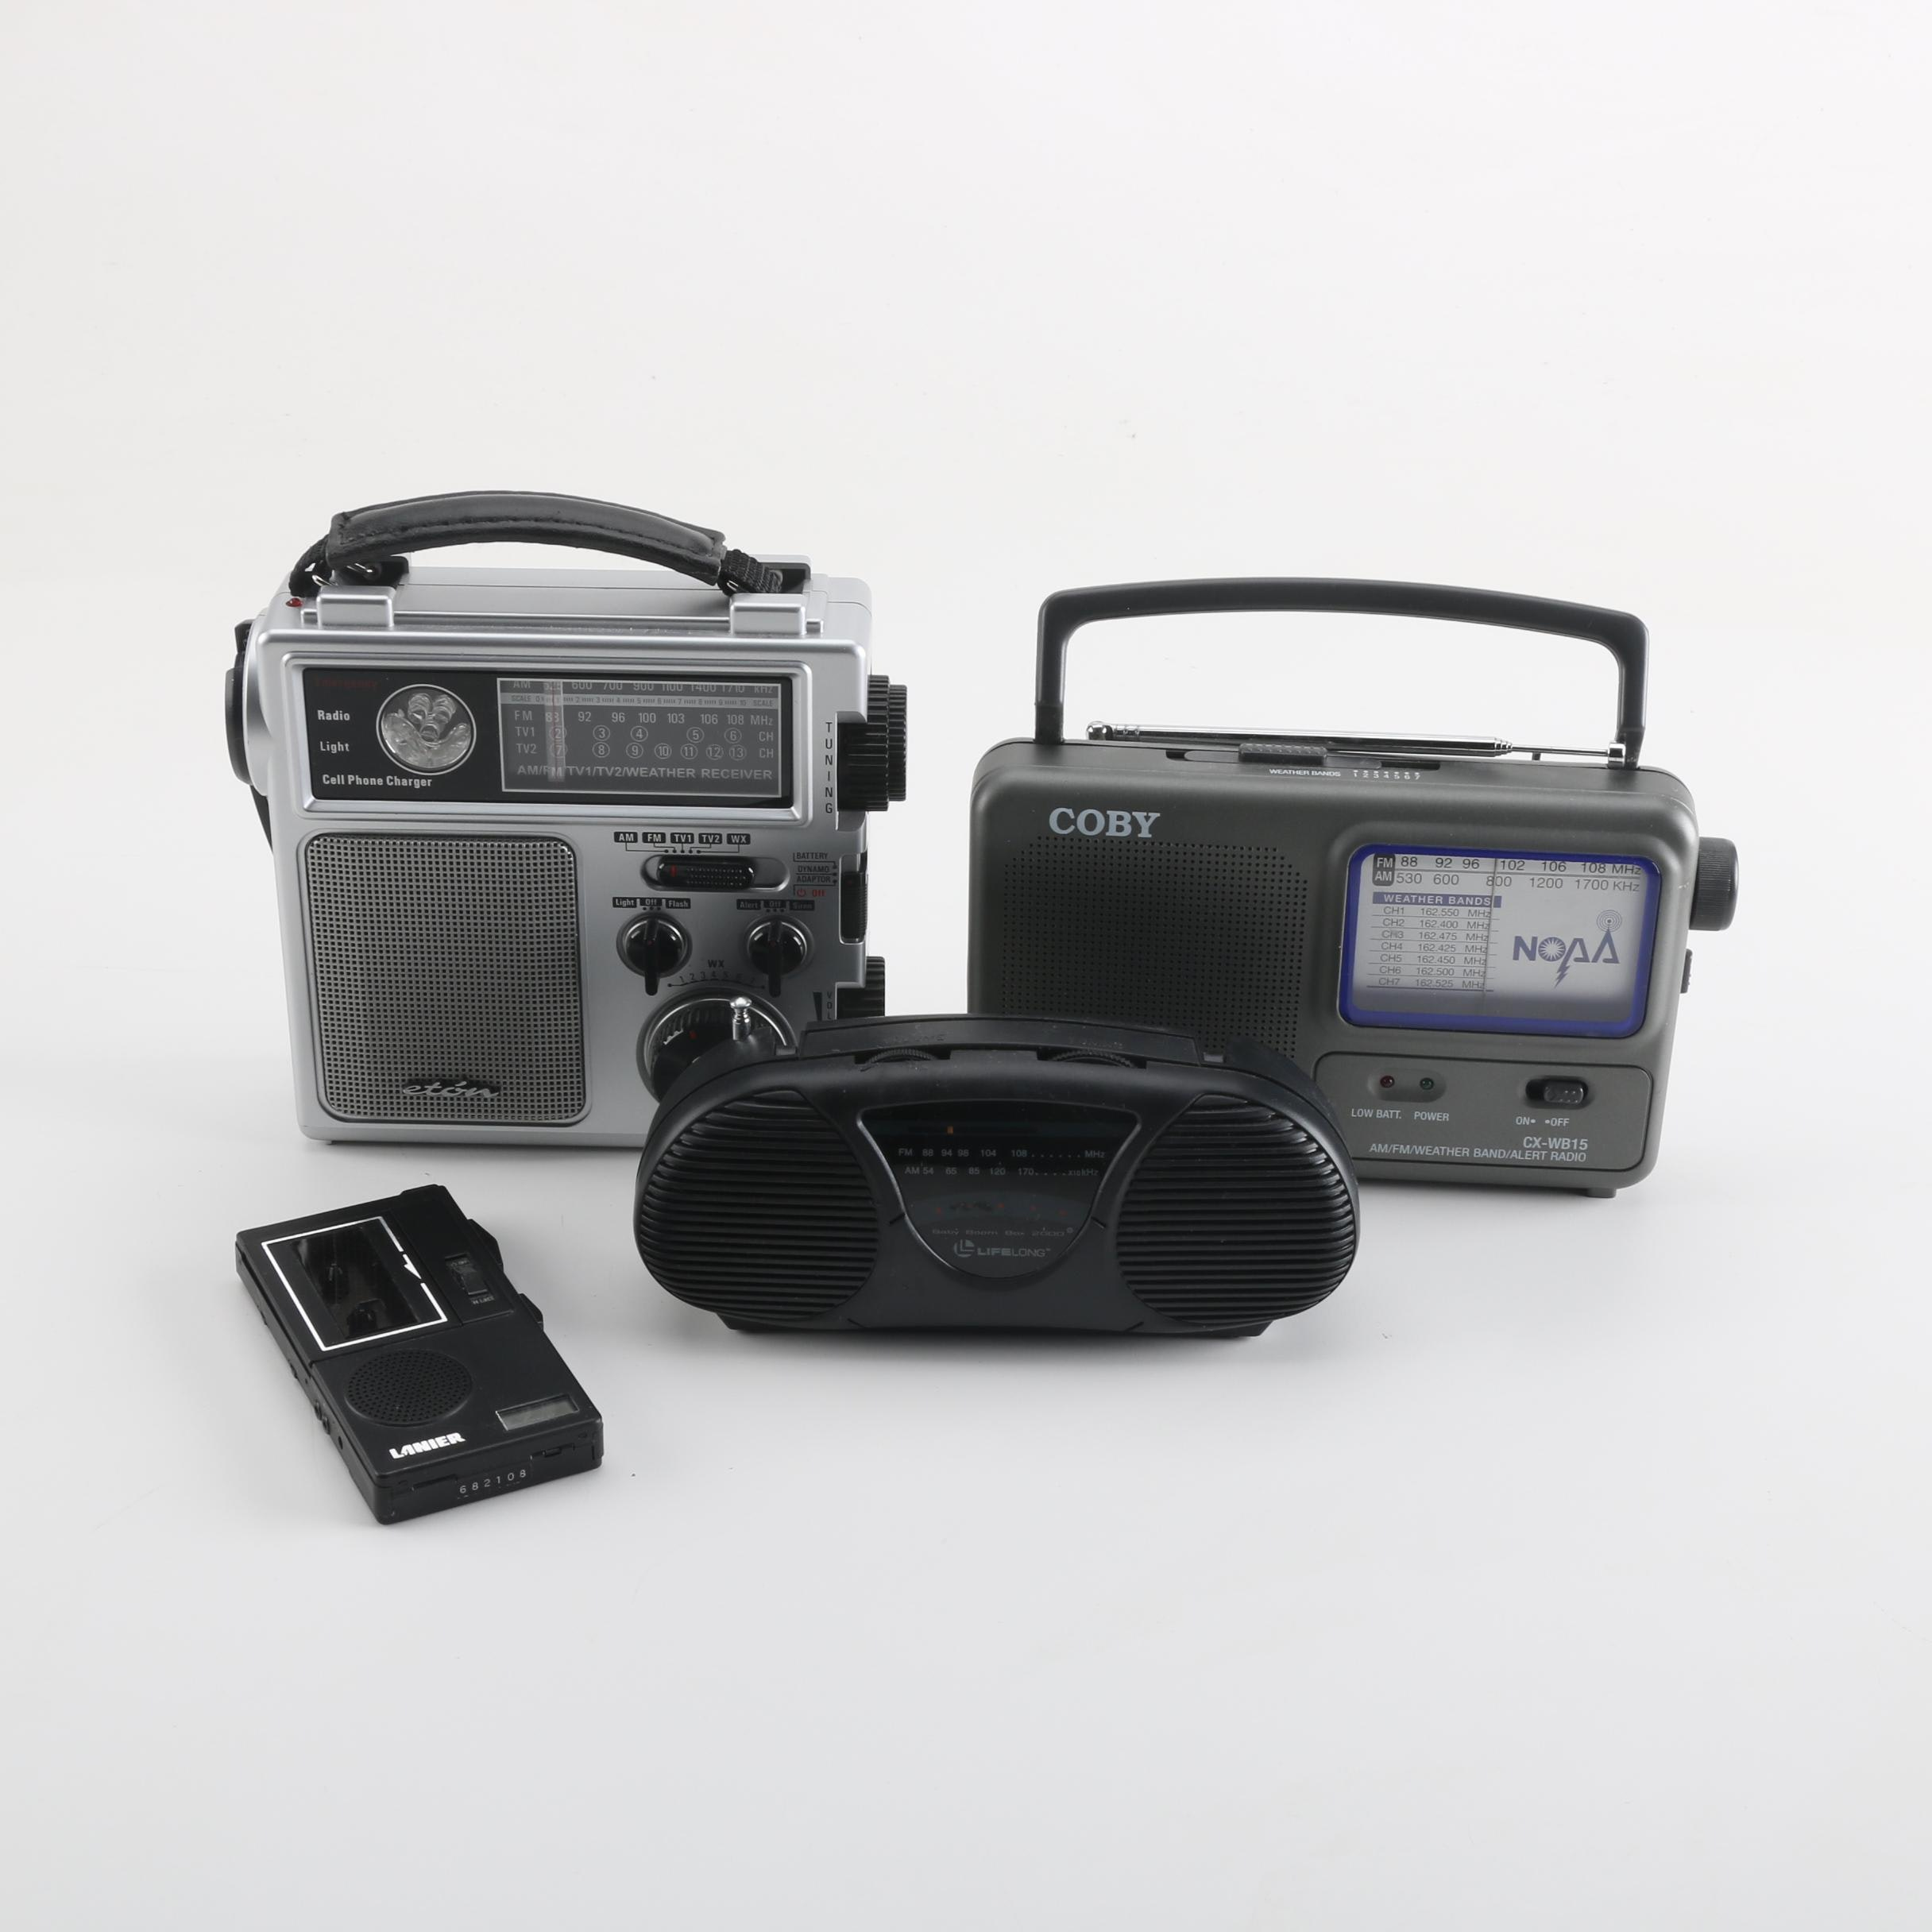 Weather Receiver, Radios and Micocassette Recorder